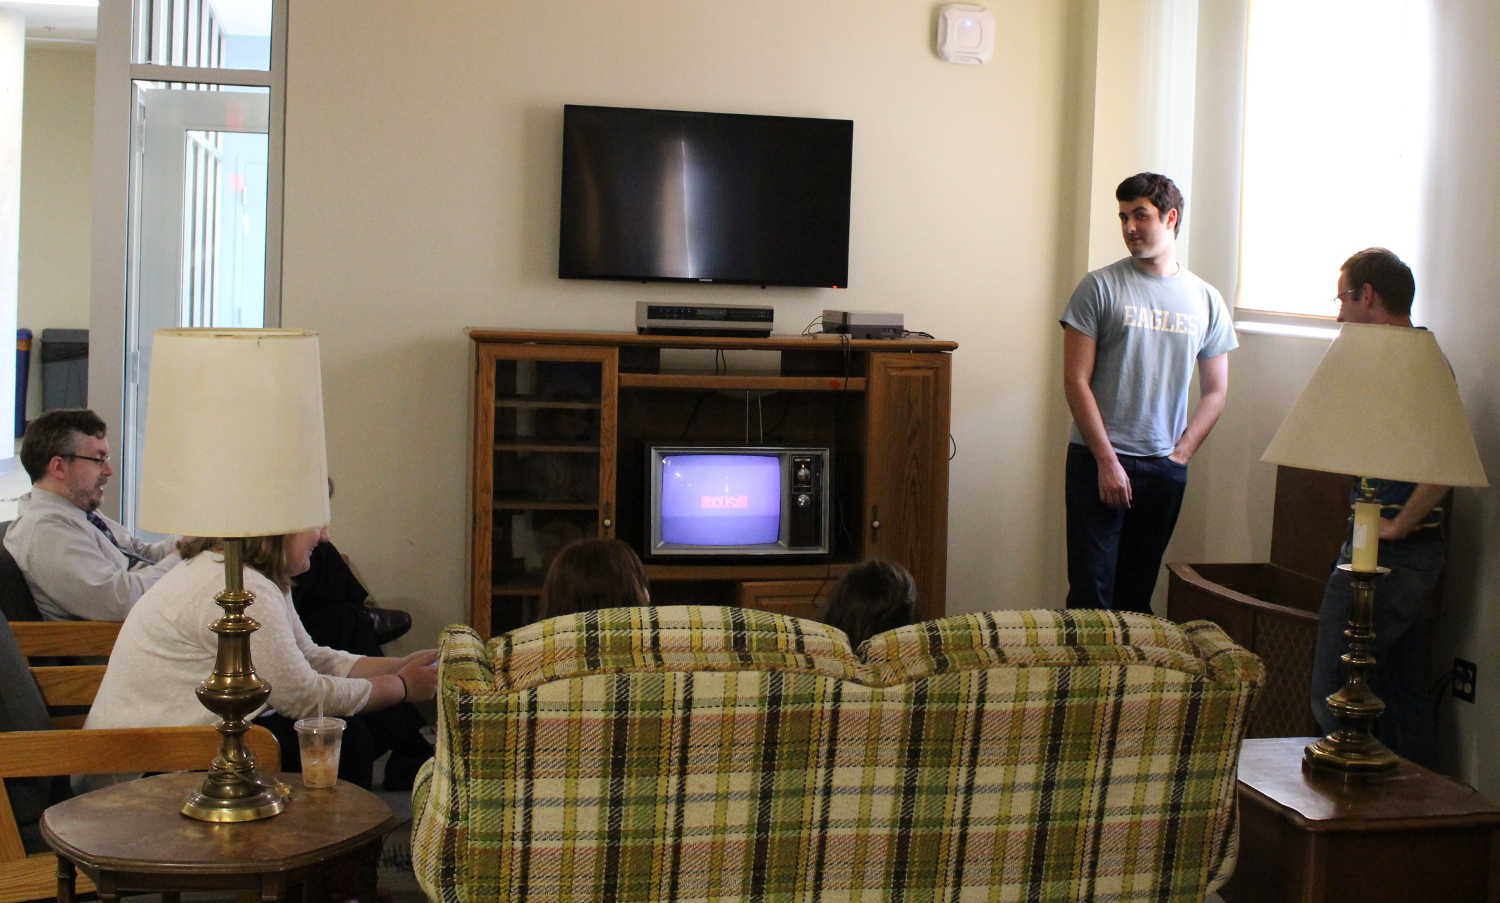 a look at the preliminary setup of the console living room